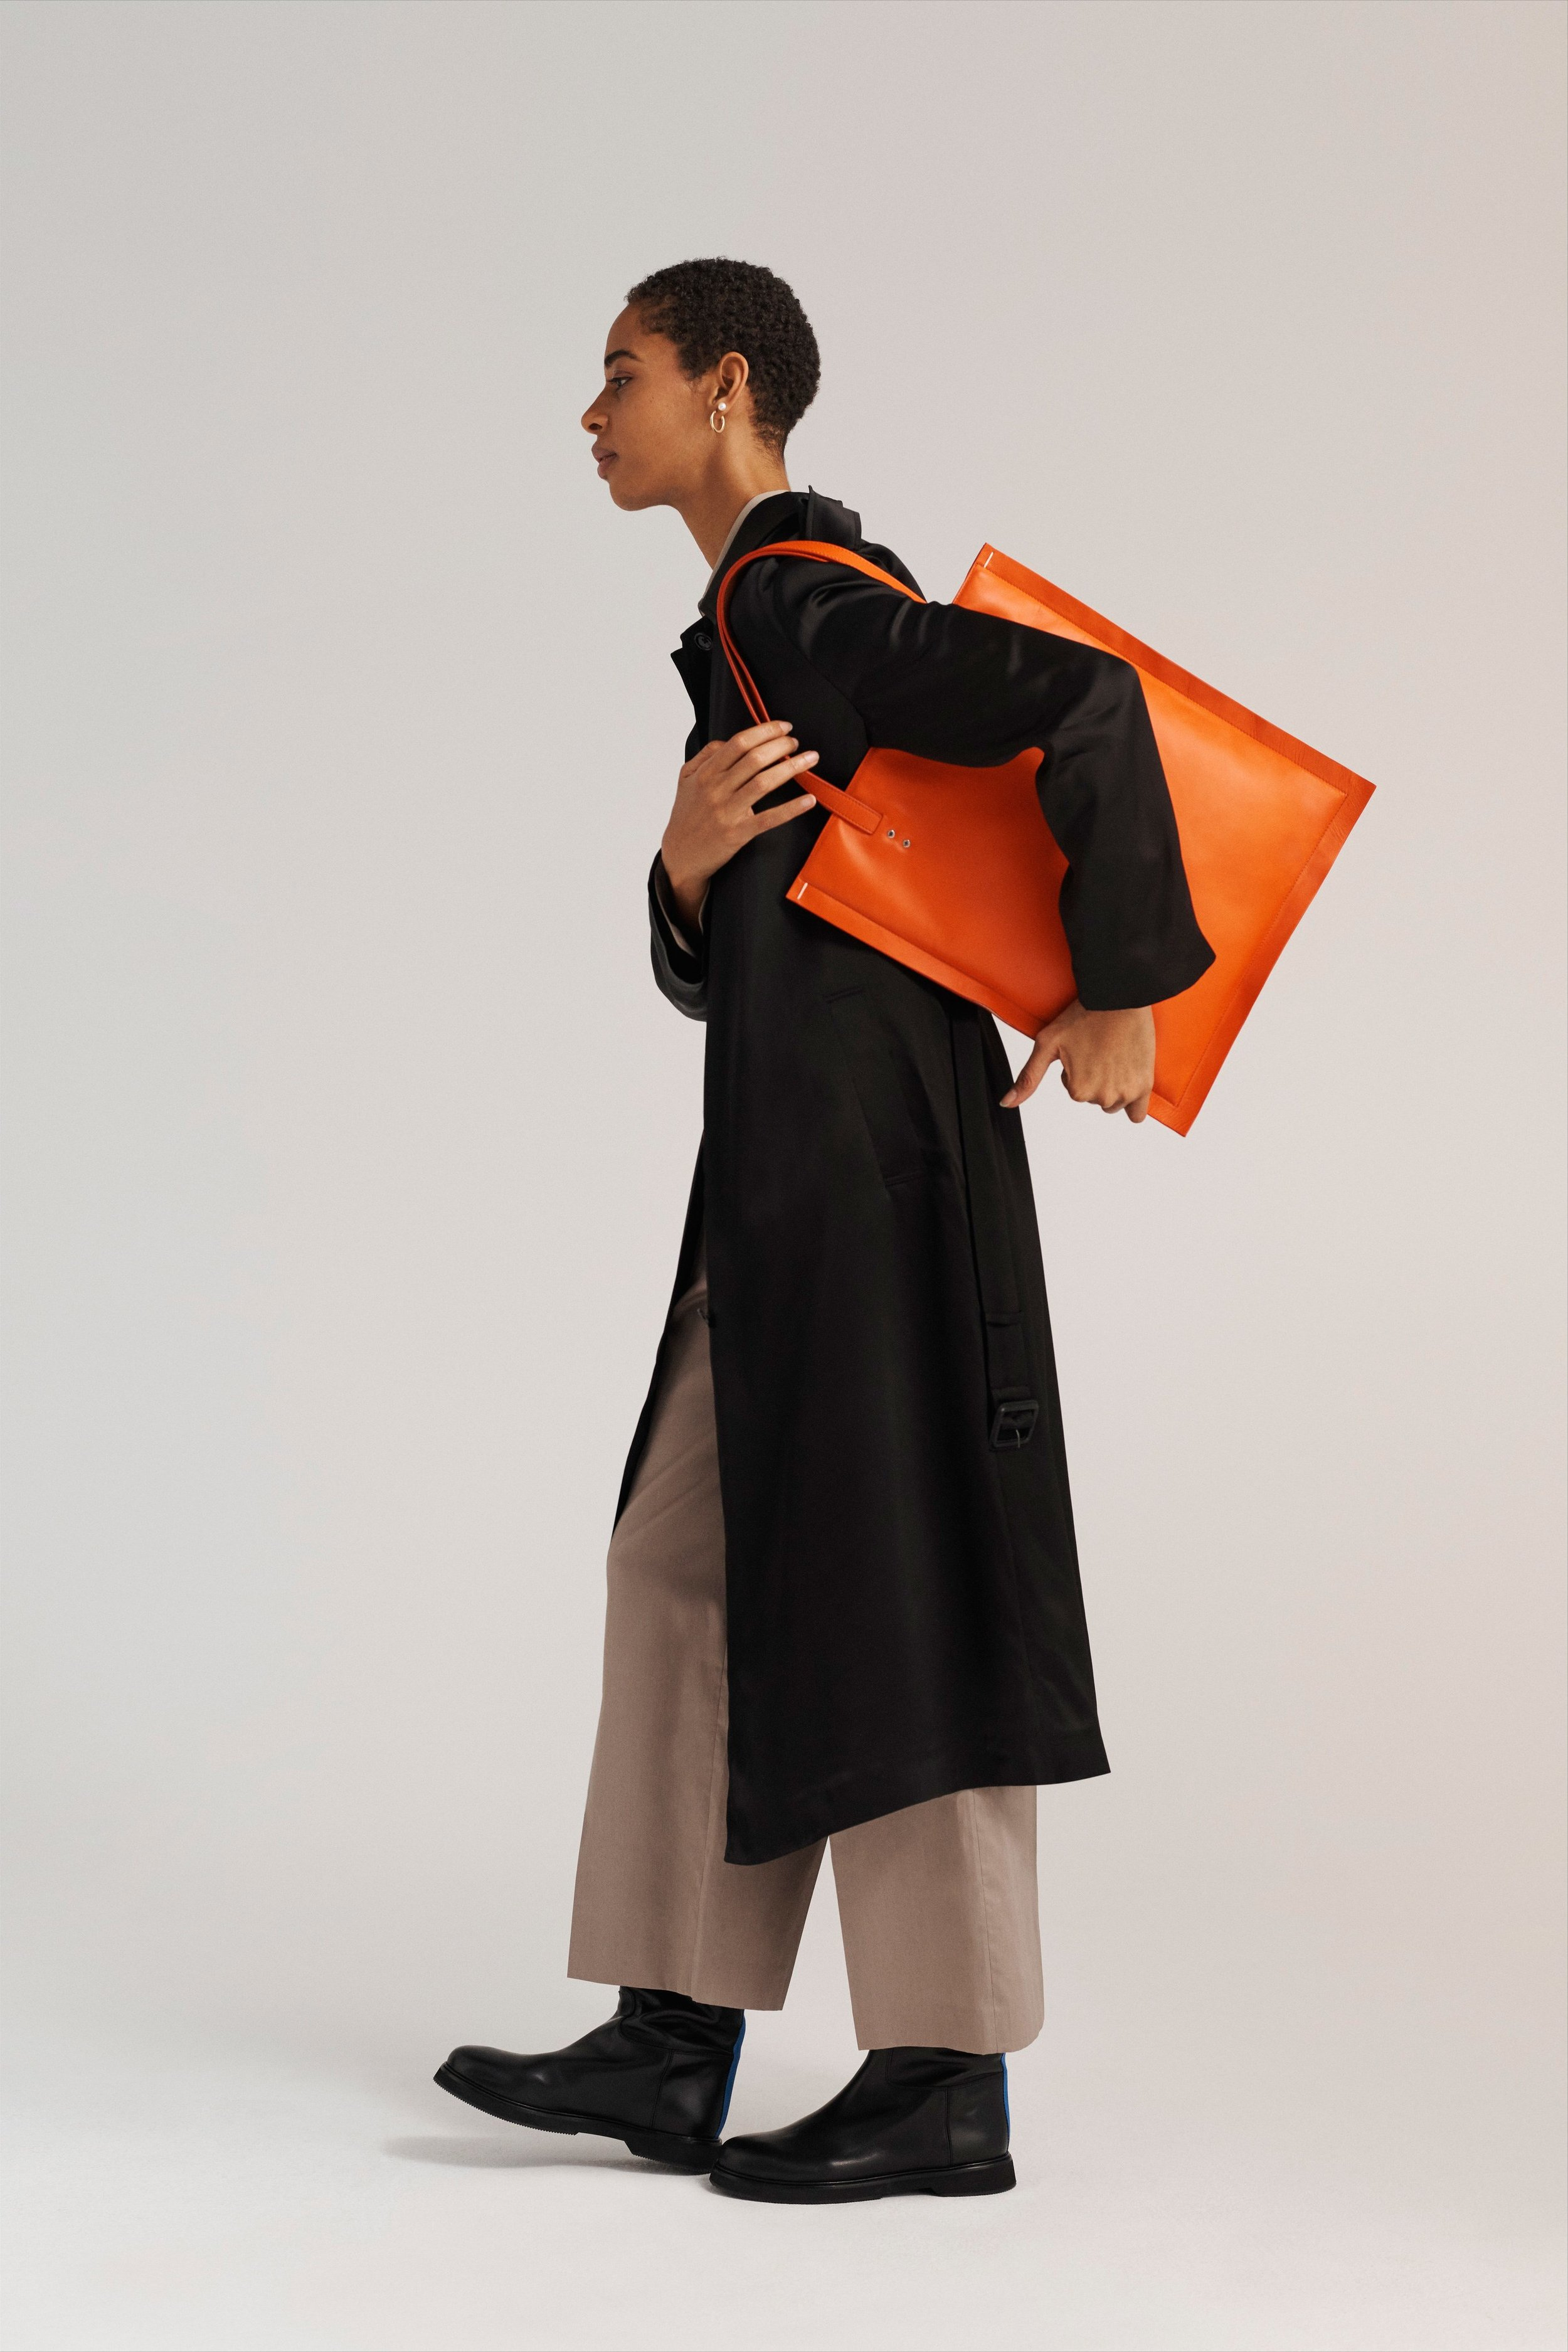 00004-joseph-london-pre-fall-19.jpg